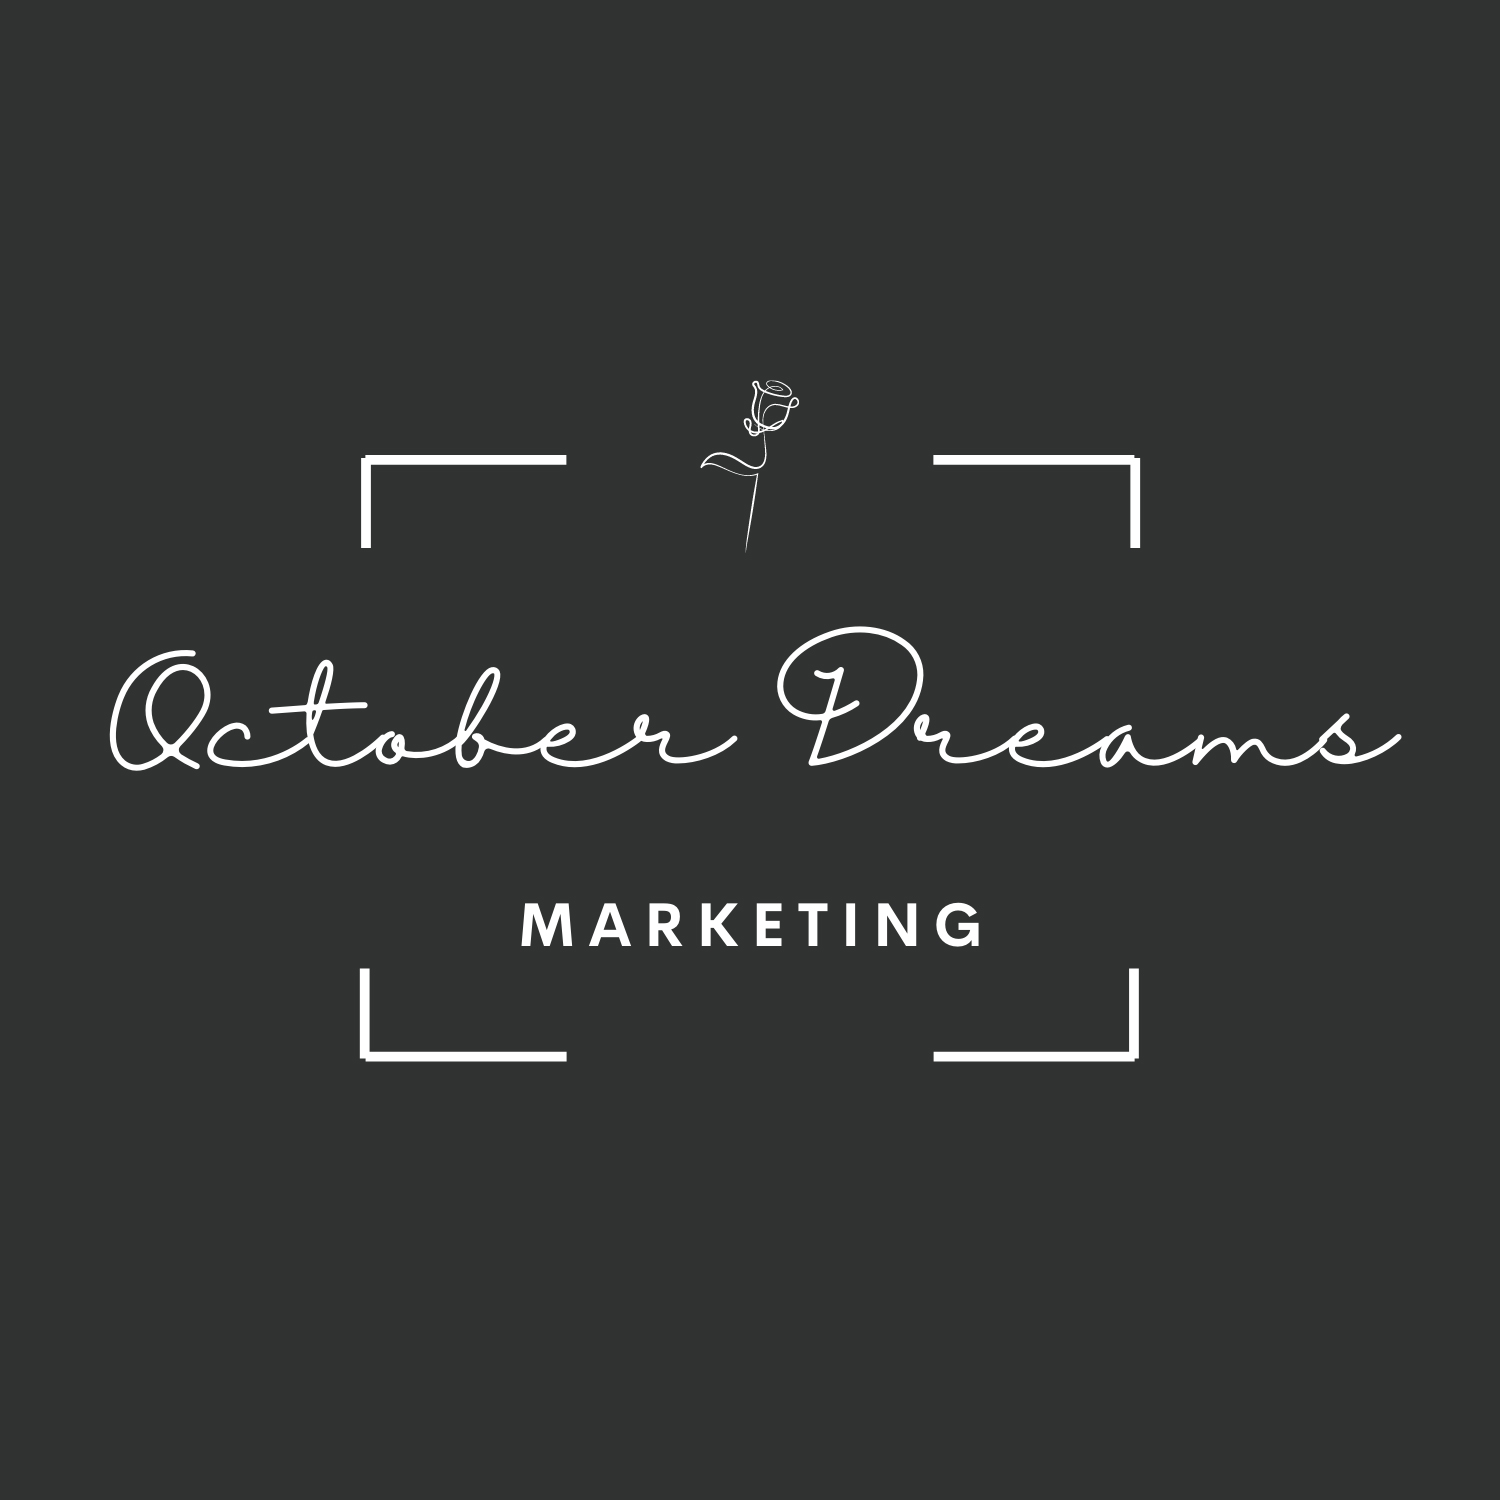 October Dreams Marketing has a new look – check it out!